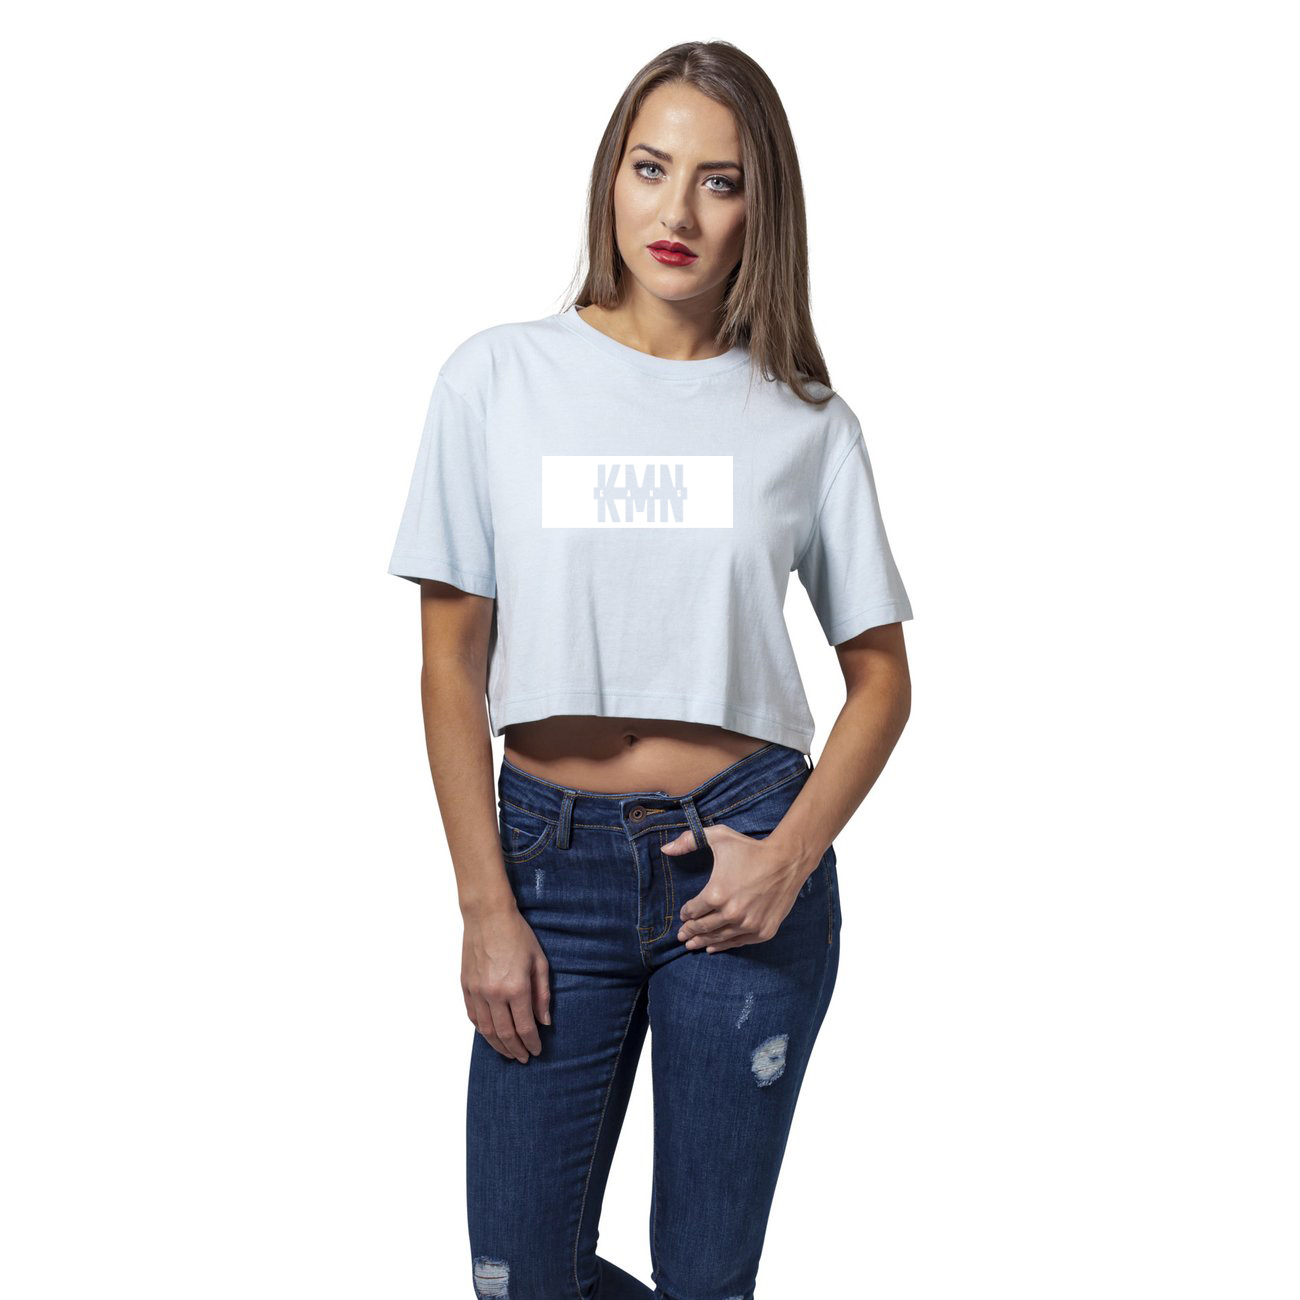 Kmn Gang Ladies Short T Shirt Hellblau 30 Shop